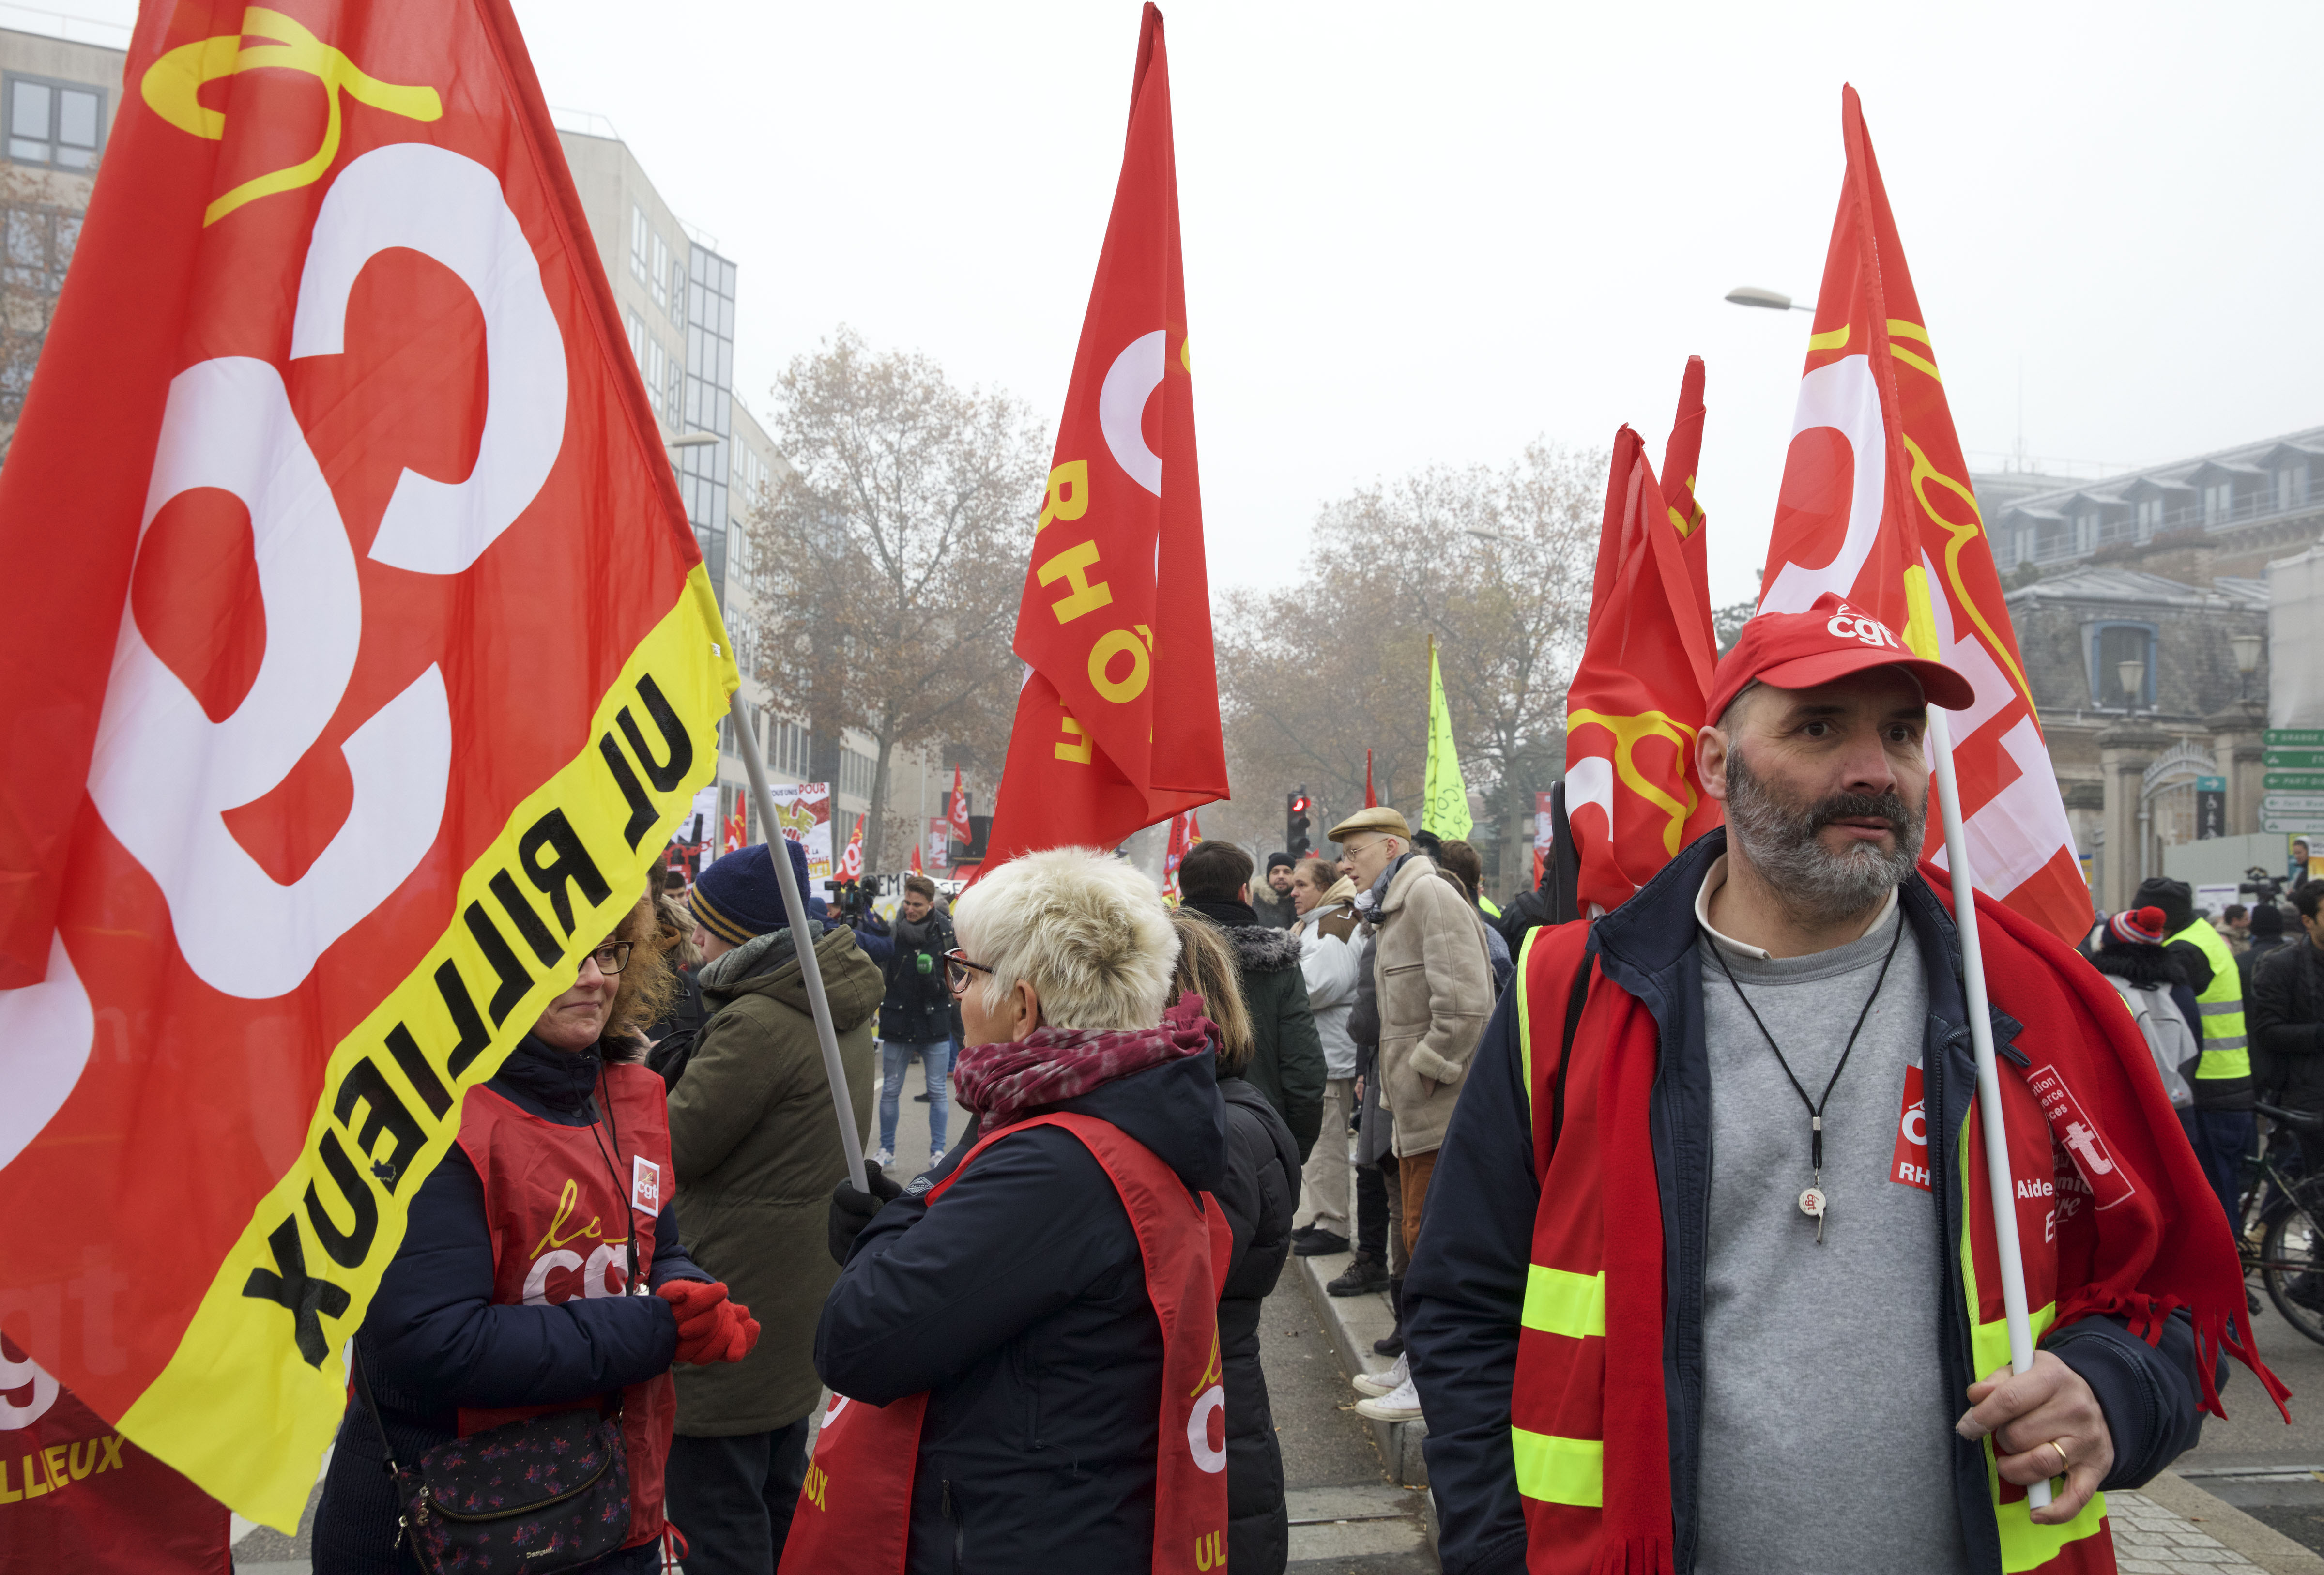 Members of France's CGT union hit the streets in Lyon. Photo: James Colburn/ZUMA Wire